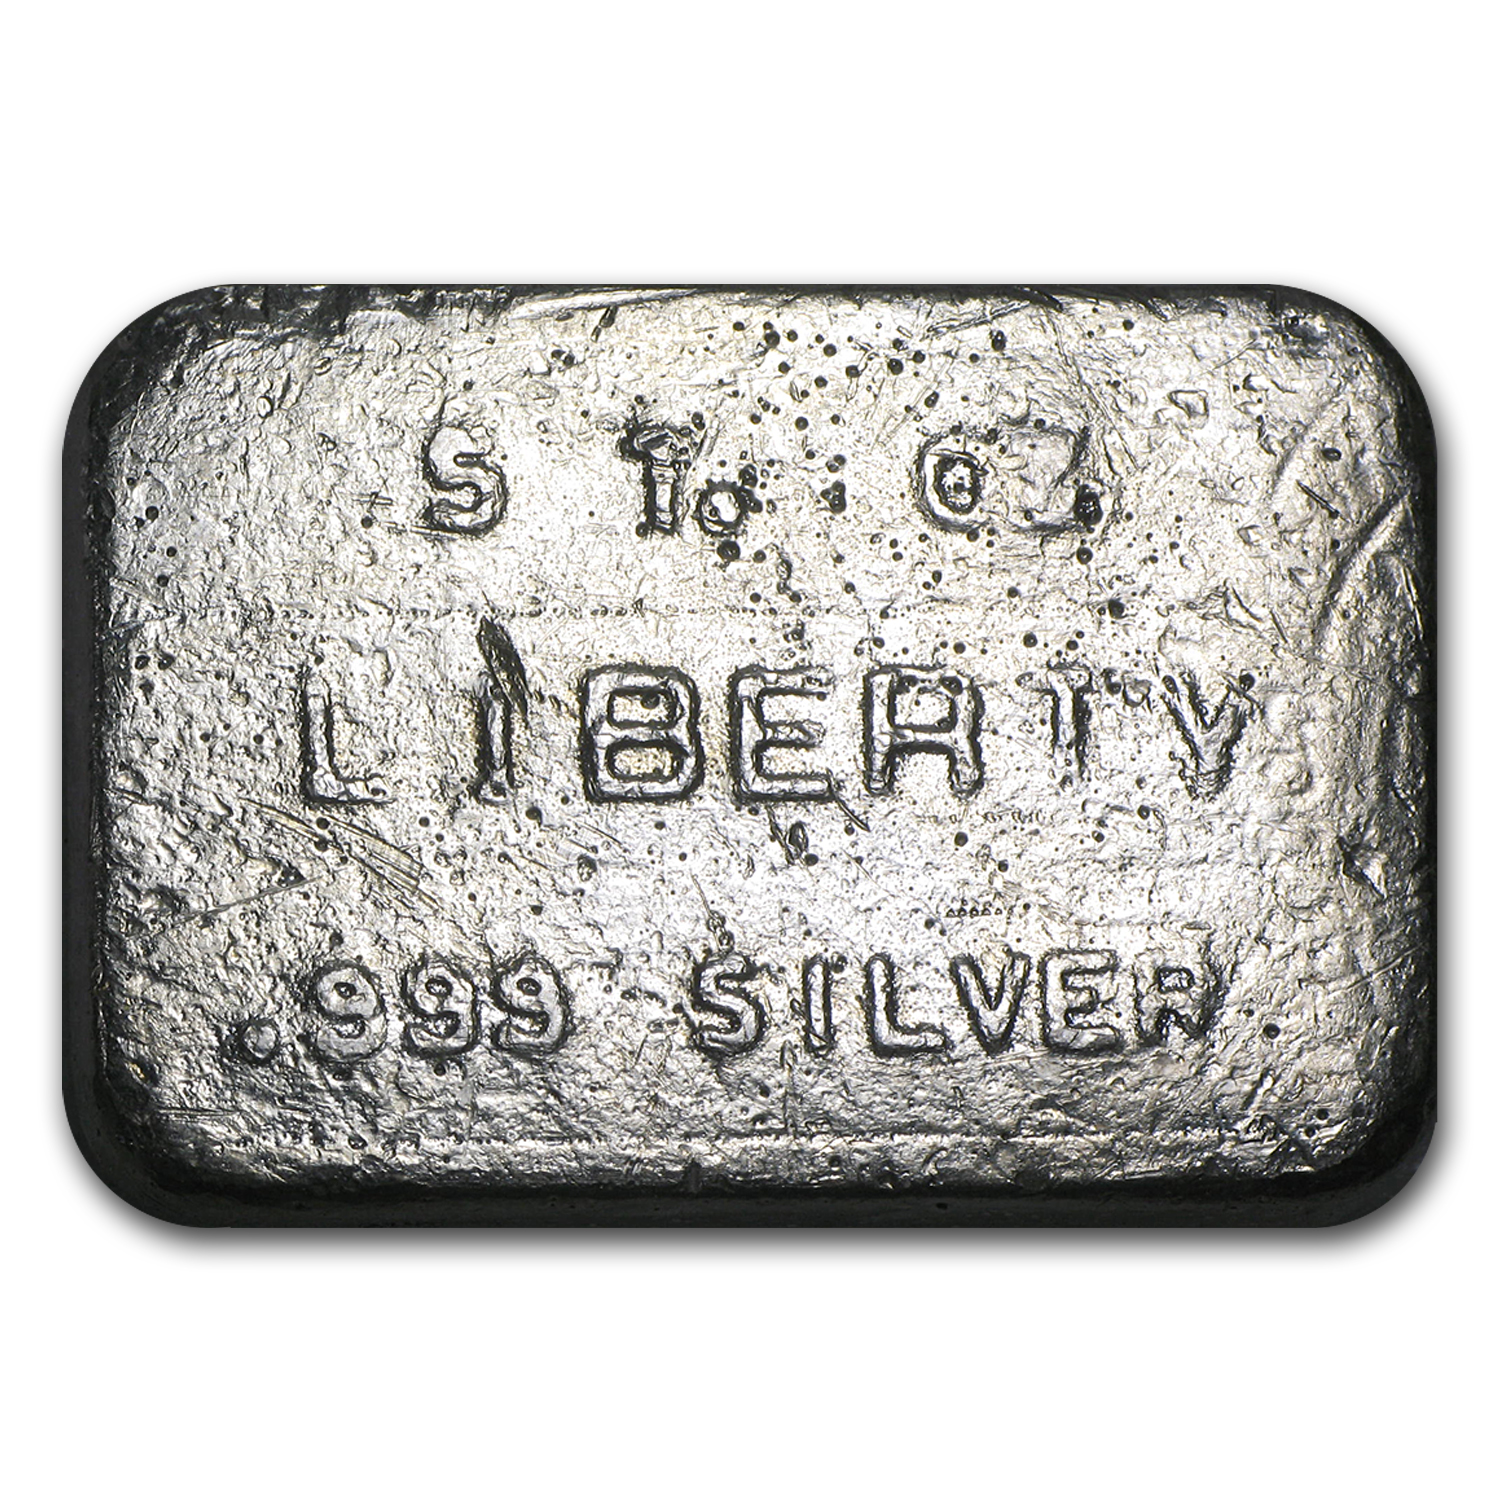 5 oz Silver Bars - Liberty